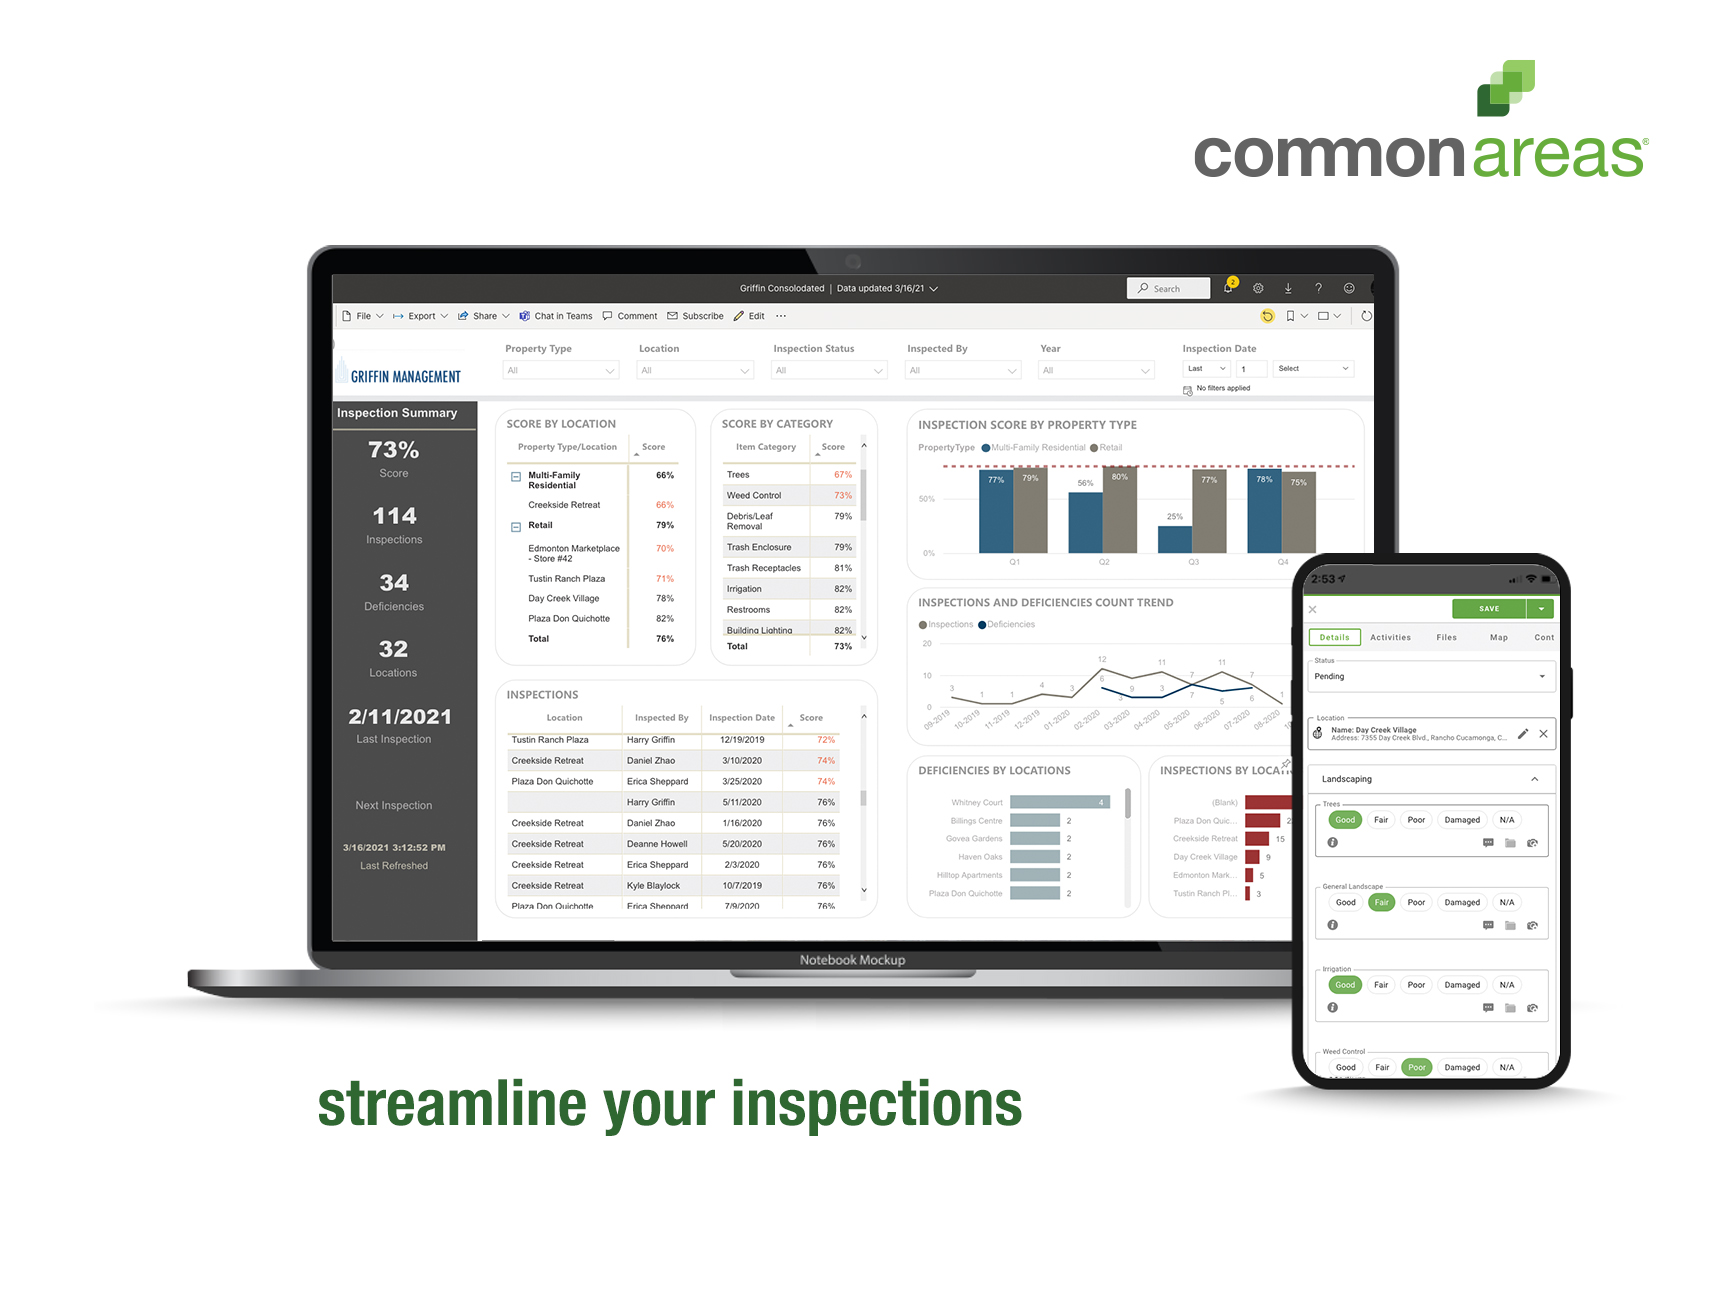 Common Areas screenshot: Staying on top of inspections and following a consistent process each time is key to keeping things running smoothly. Easily access the documentation needed to collect an accurate assessment of the condition of your properties and assets.